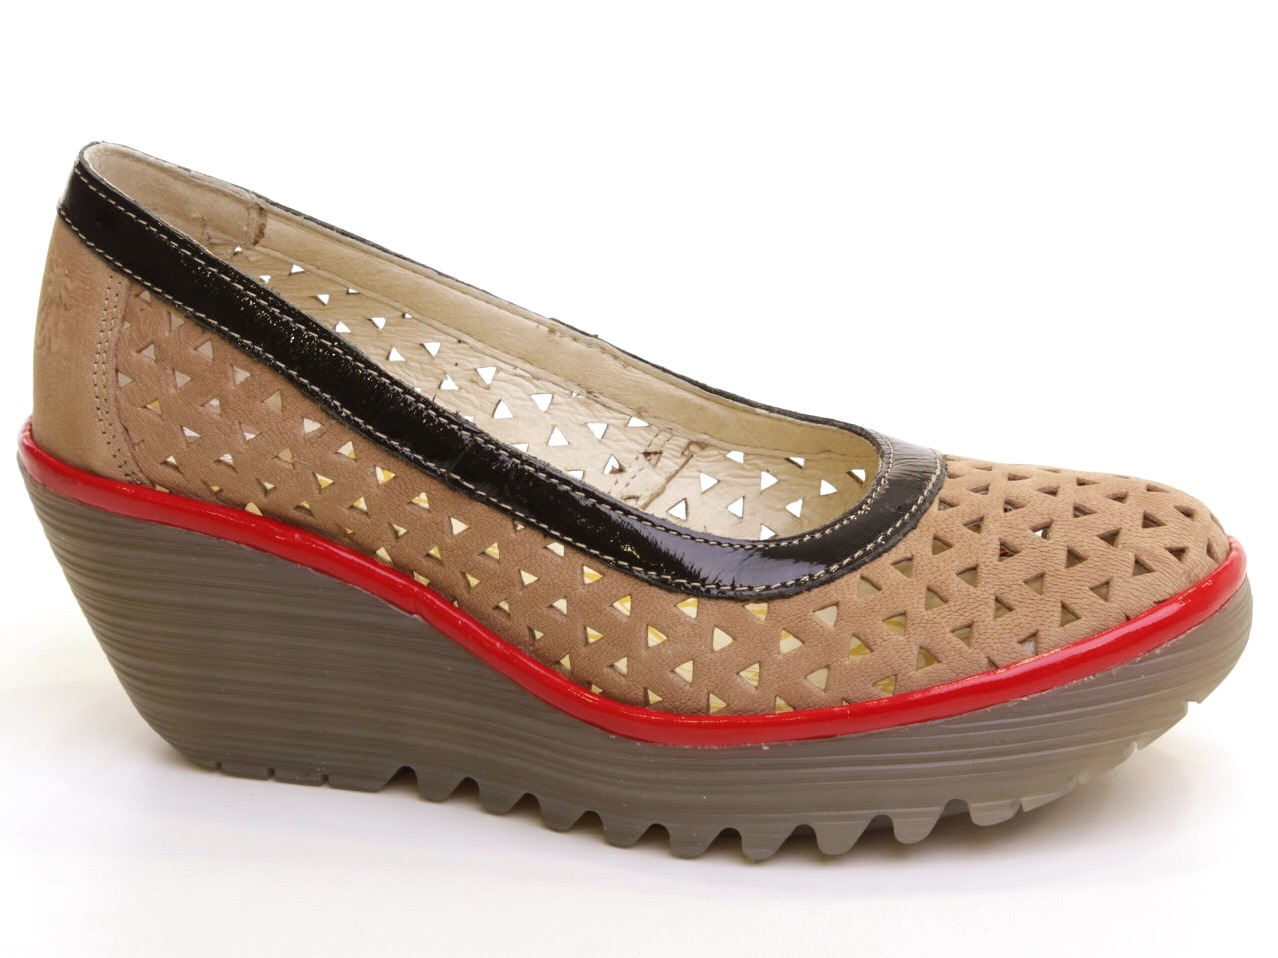 Wedge Shoes Fly London - 339 YARE597